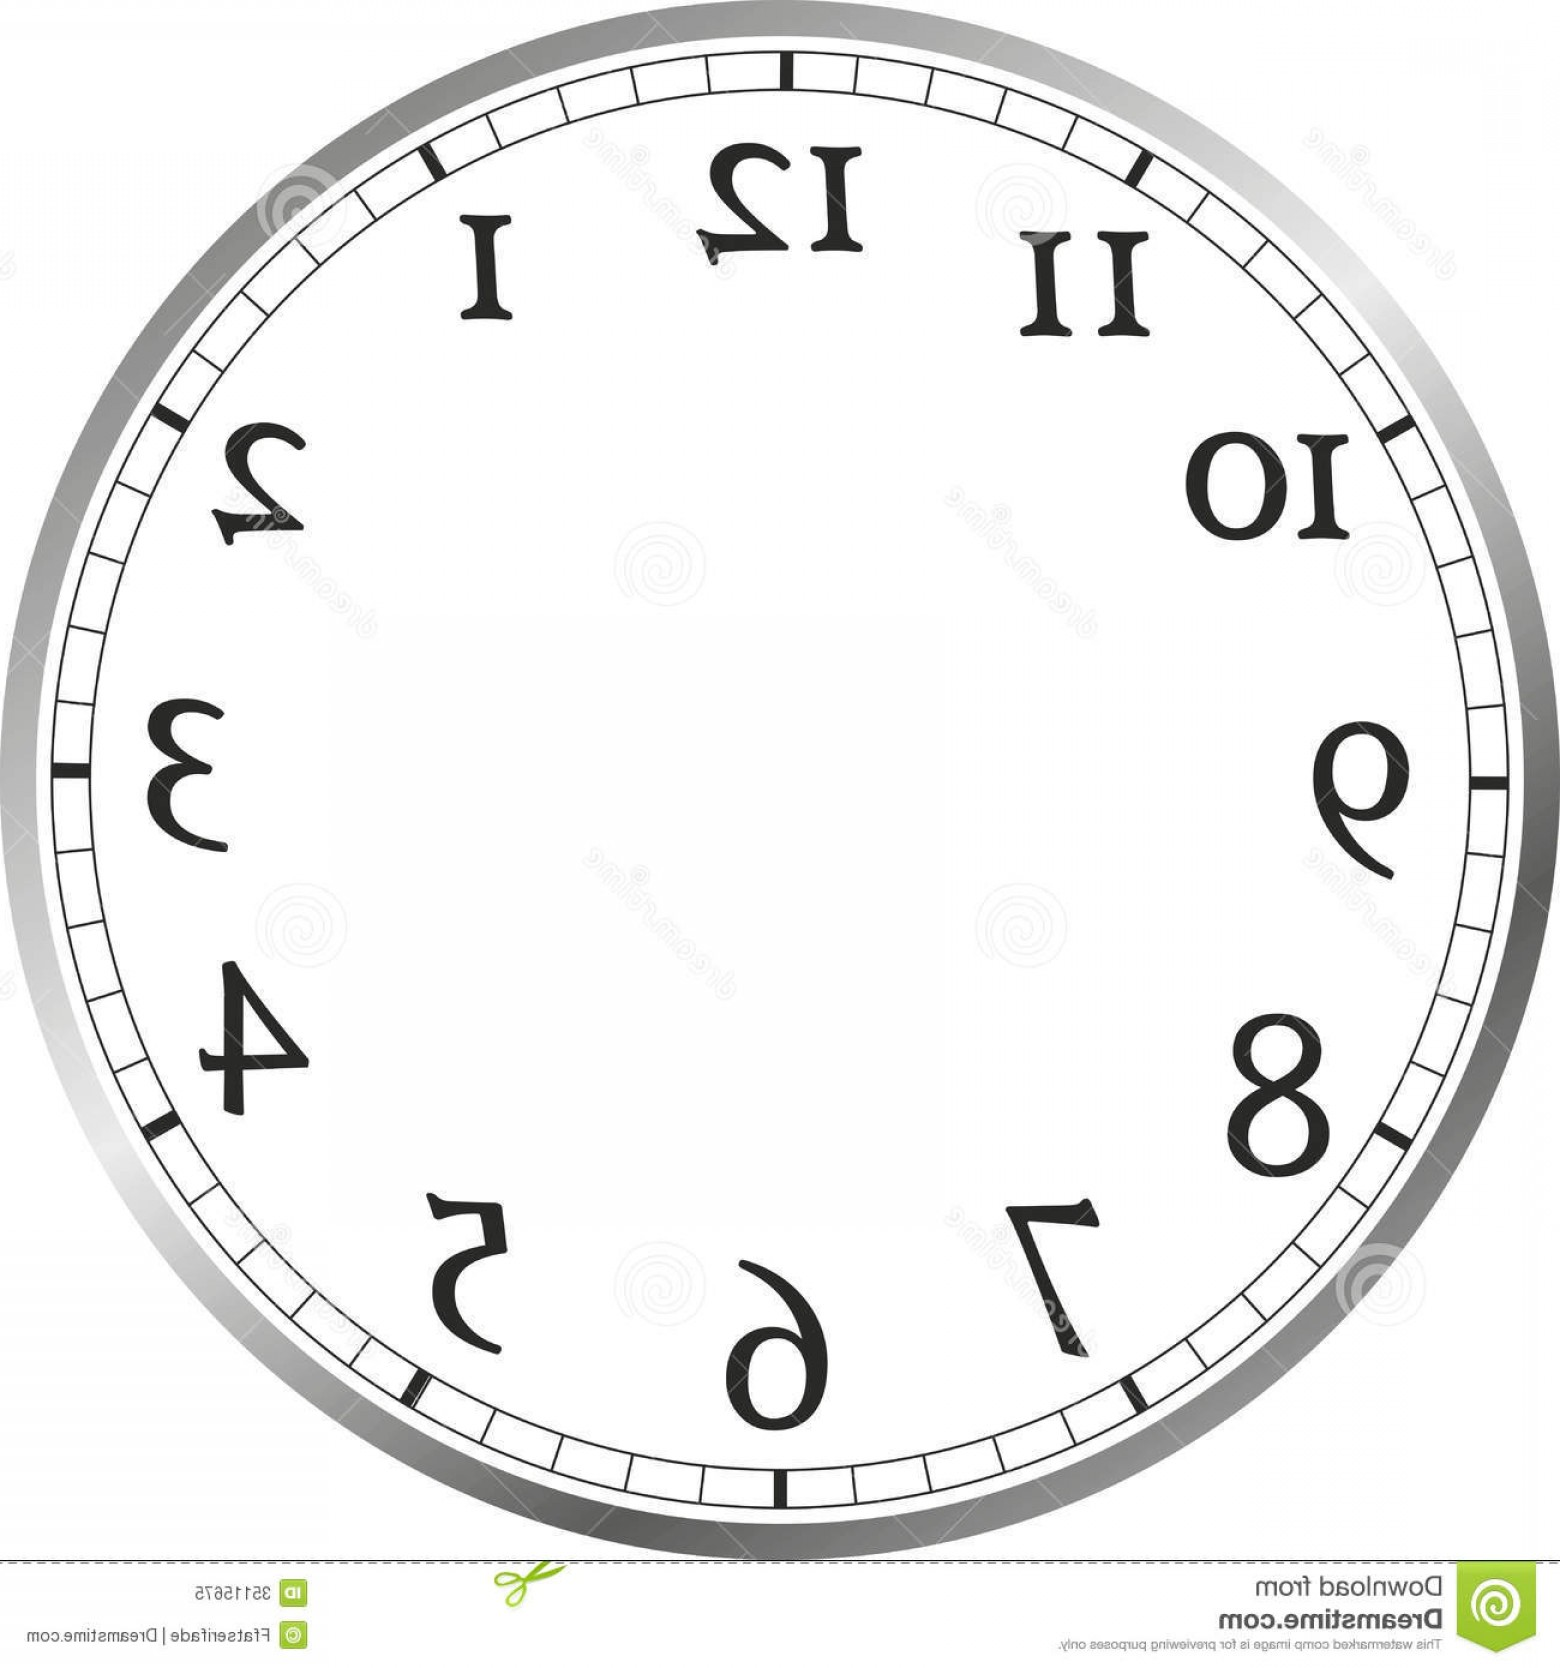 Watch Face Vector: Royalty Free Stock Photo Watch Face Large Numerals Hands Image